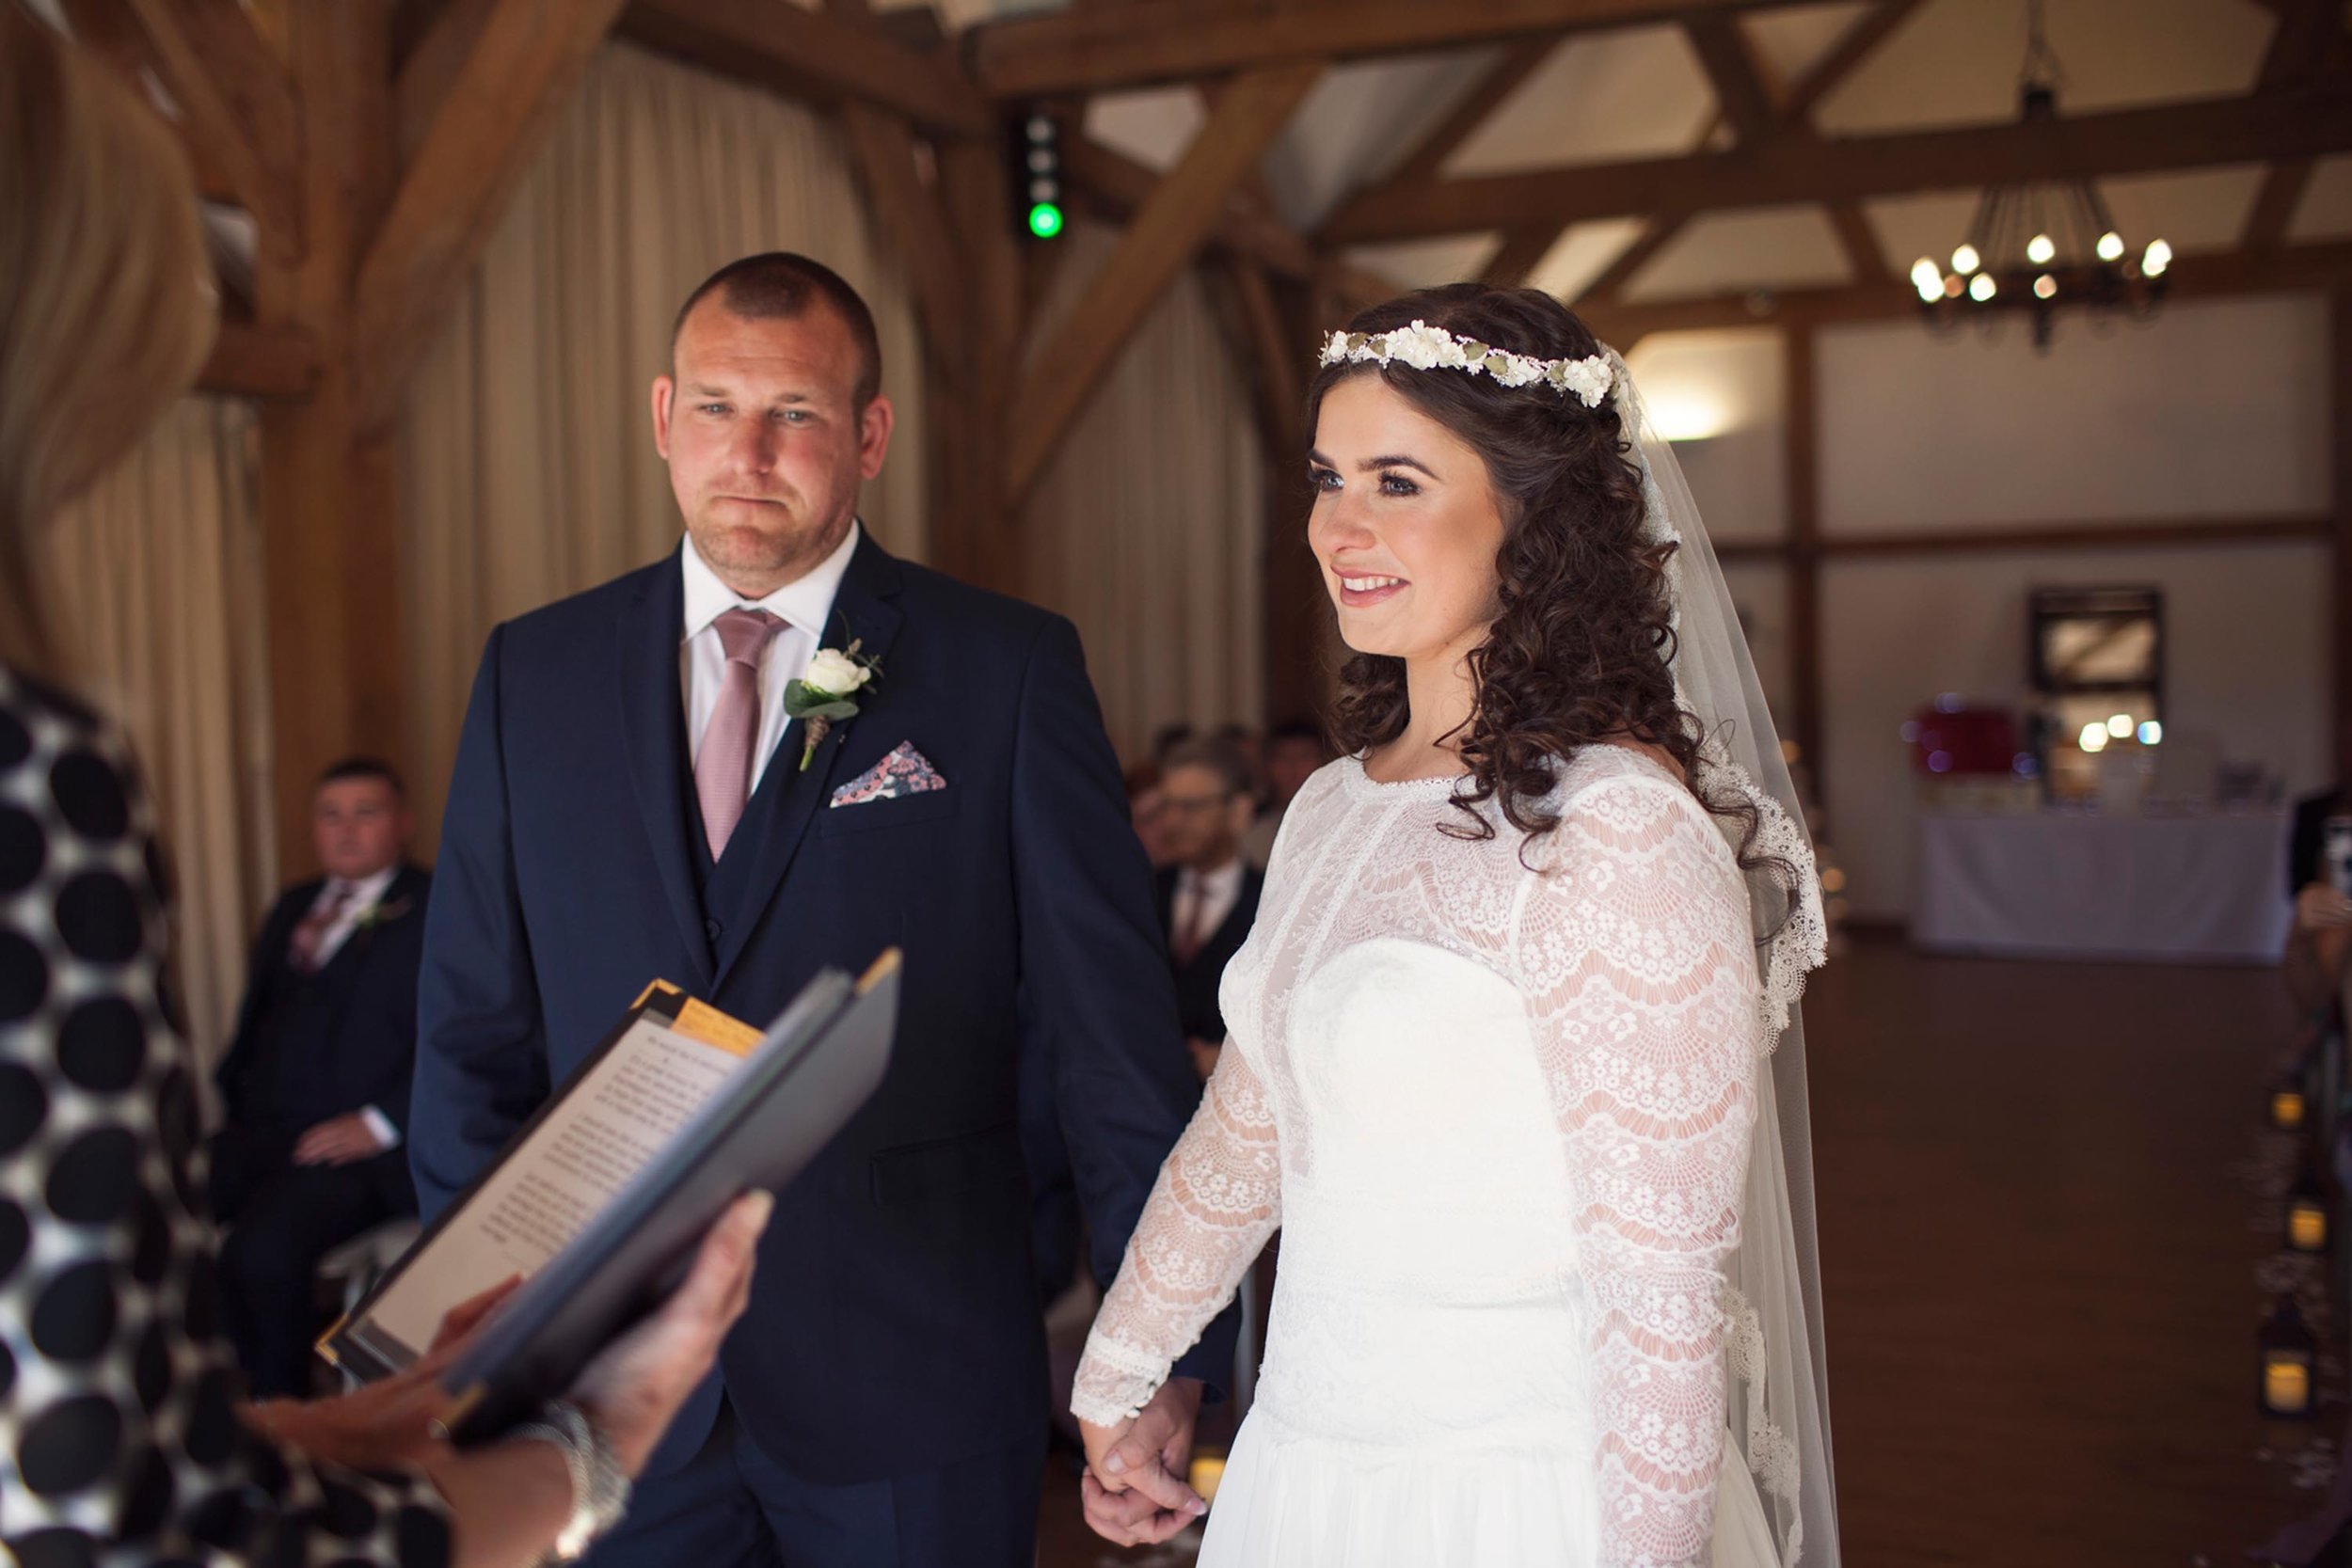 Cheshire wedding photographer smiling and crying vows